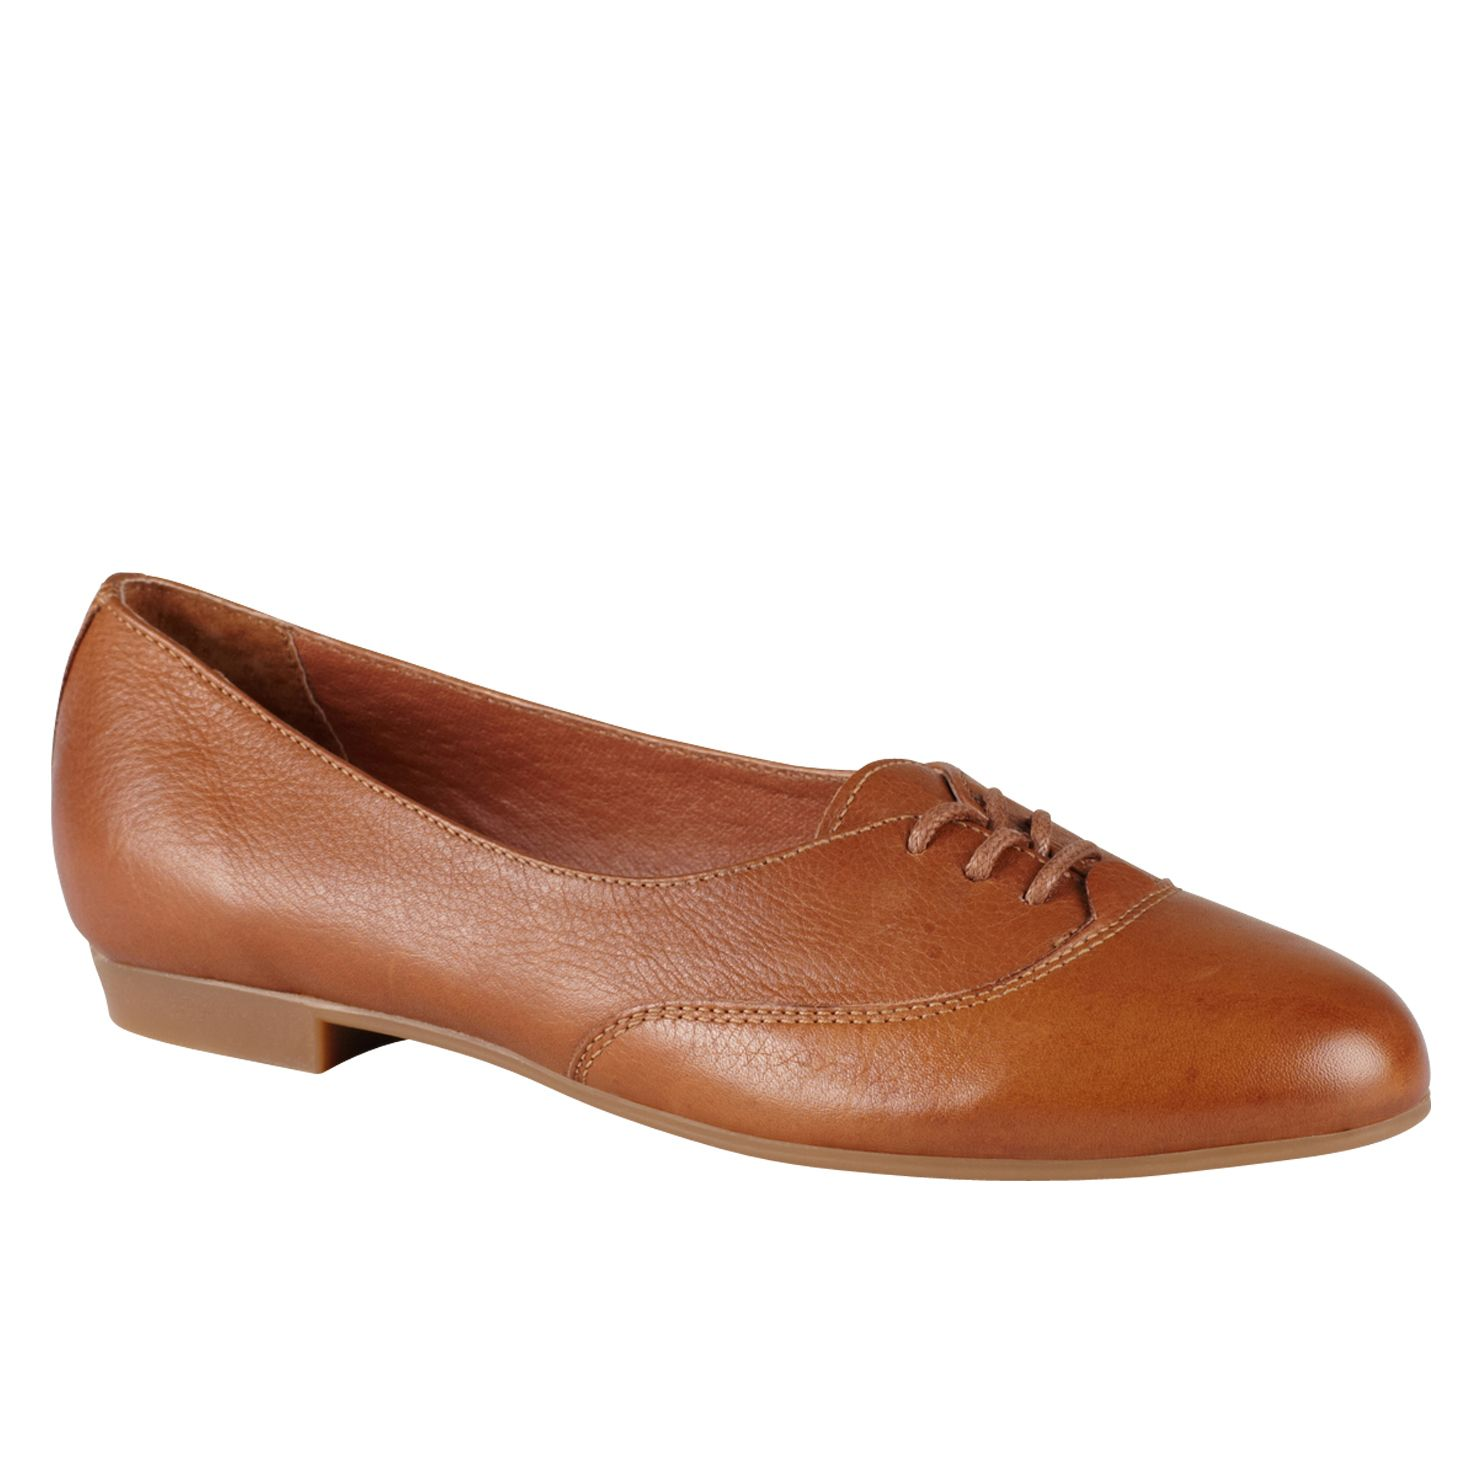 Bicchignano round toe brogue shoes